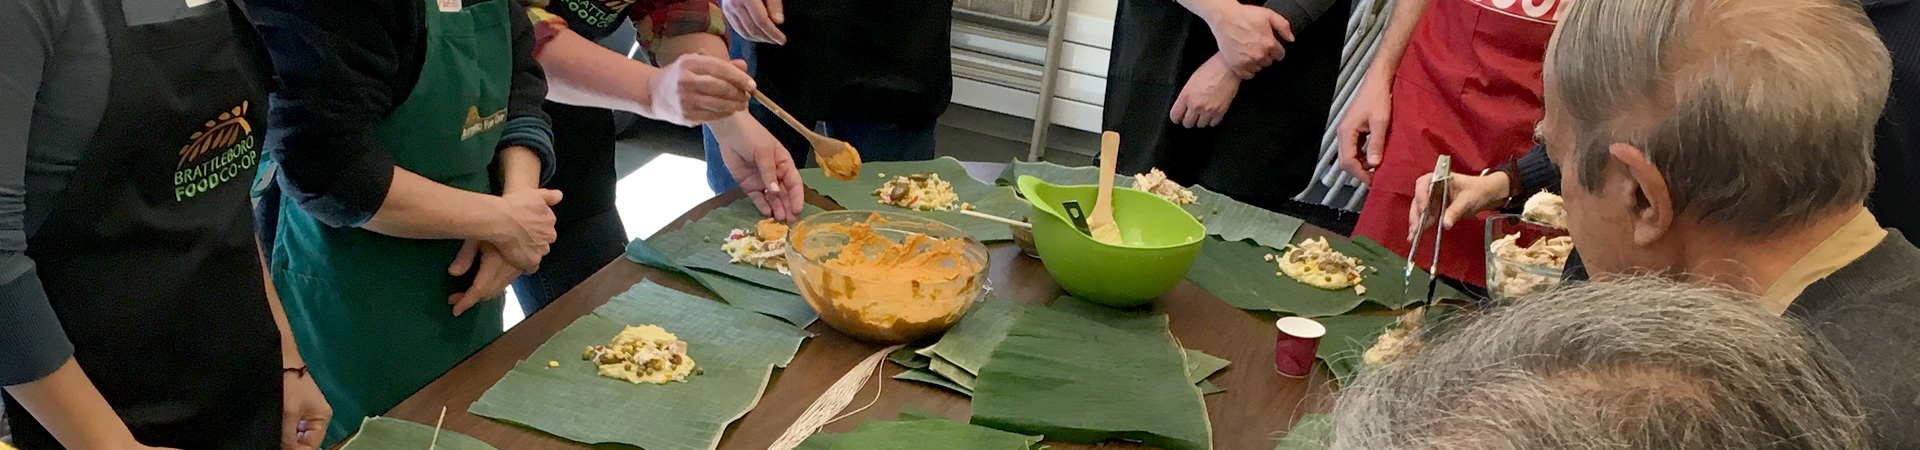 A free adult class on making tamales